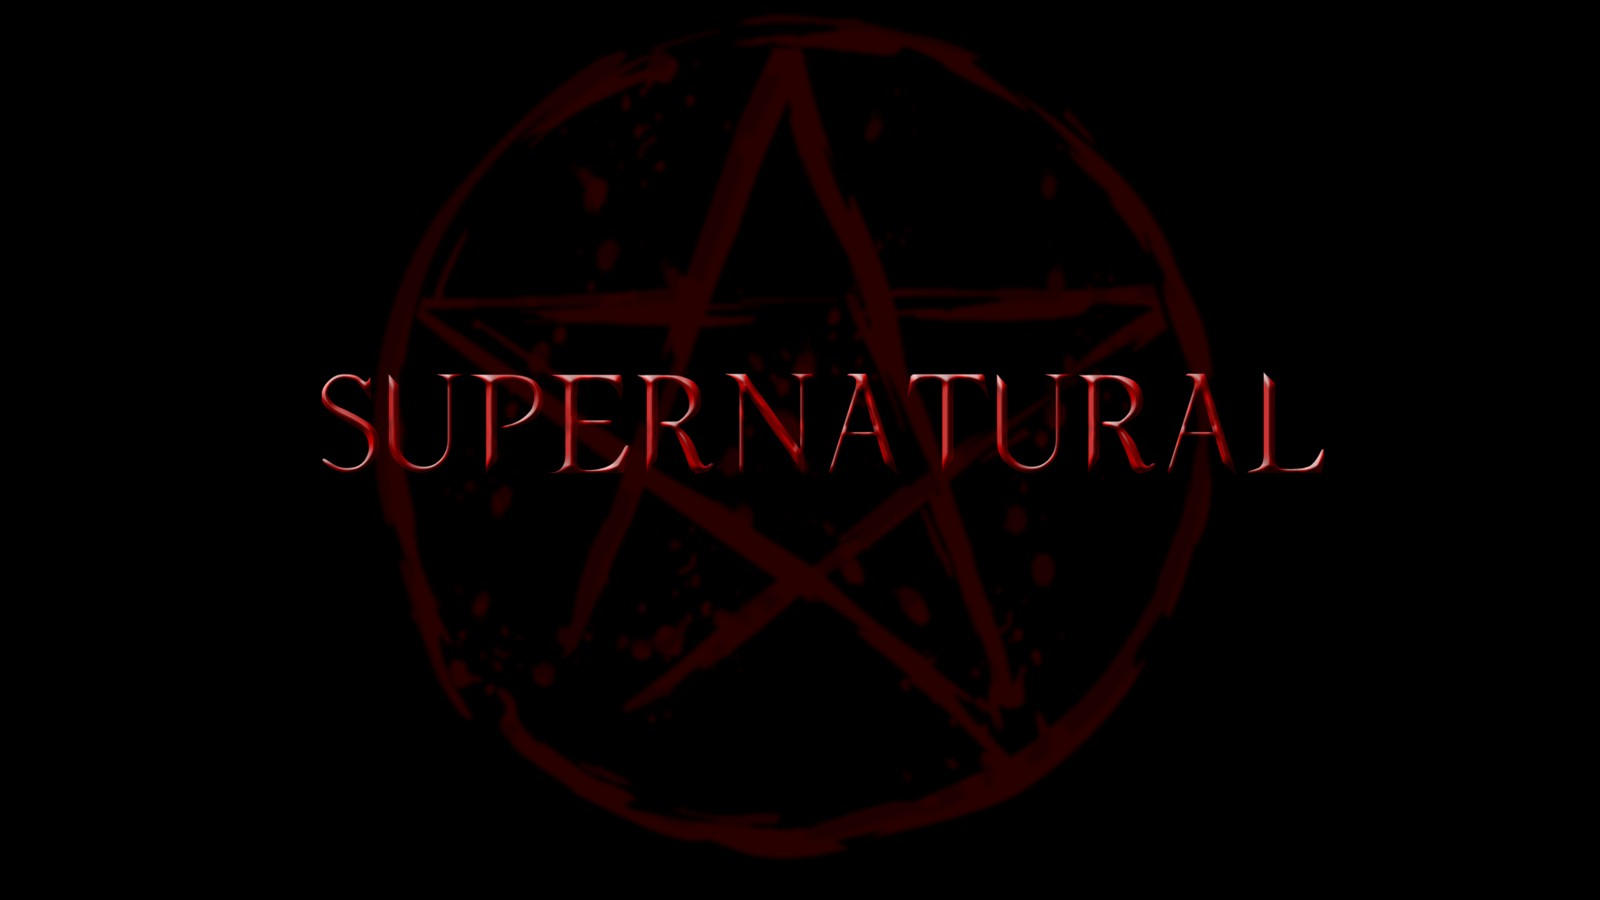 46+] Supernatural Wallpaper Desktop on